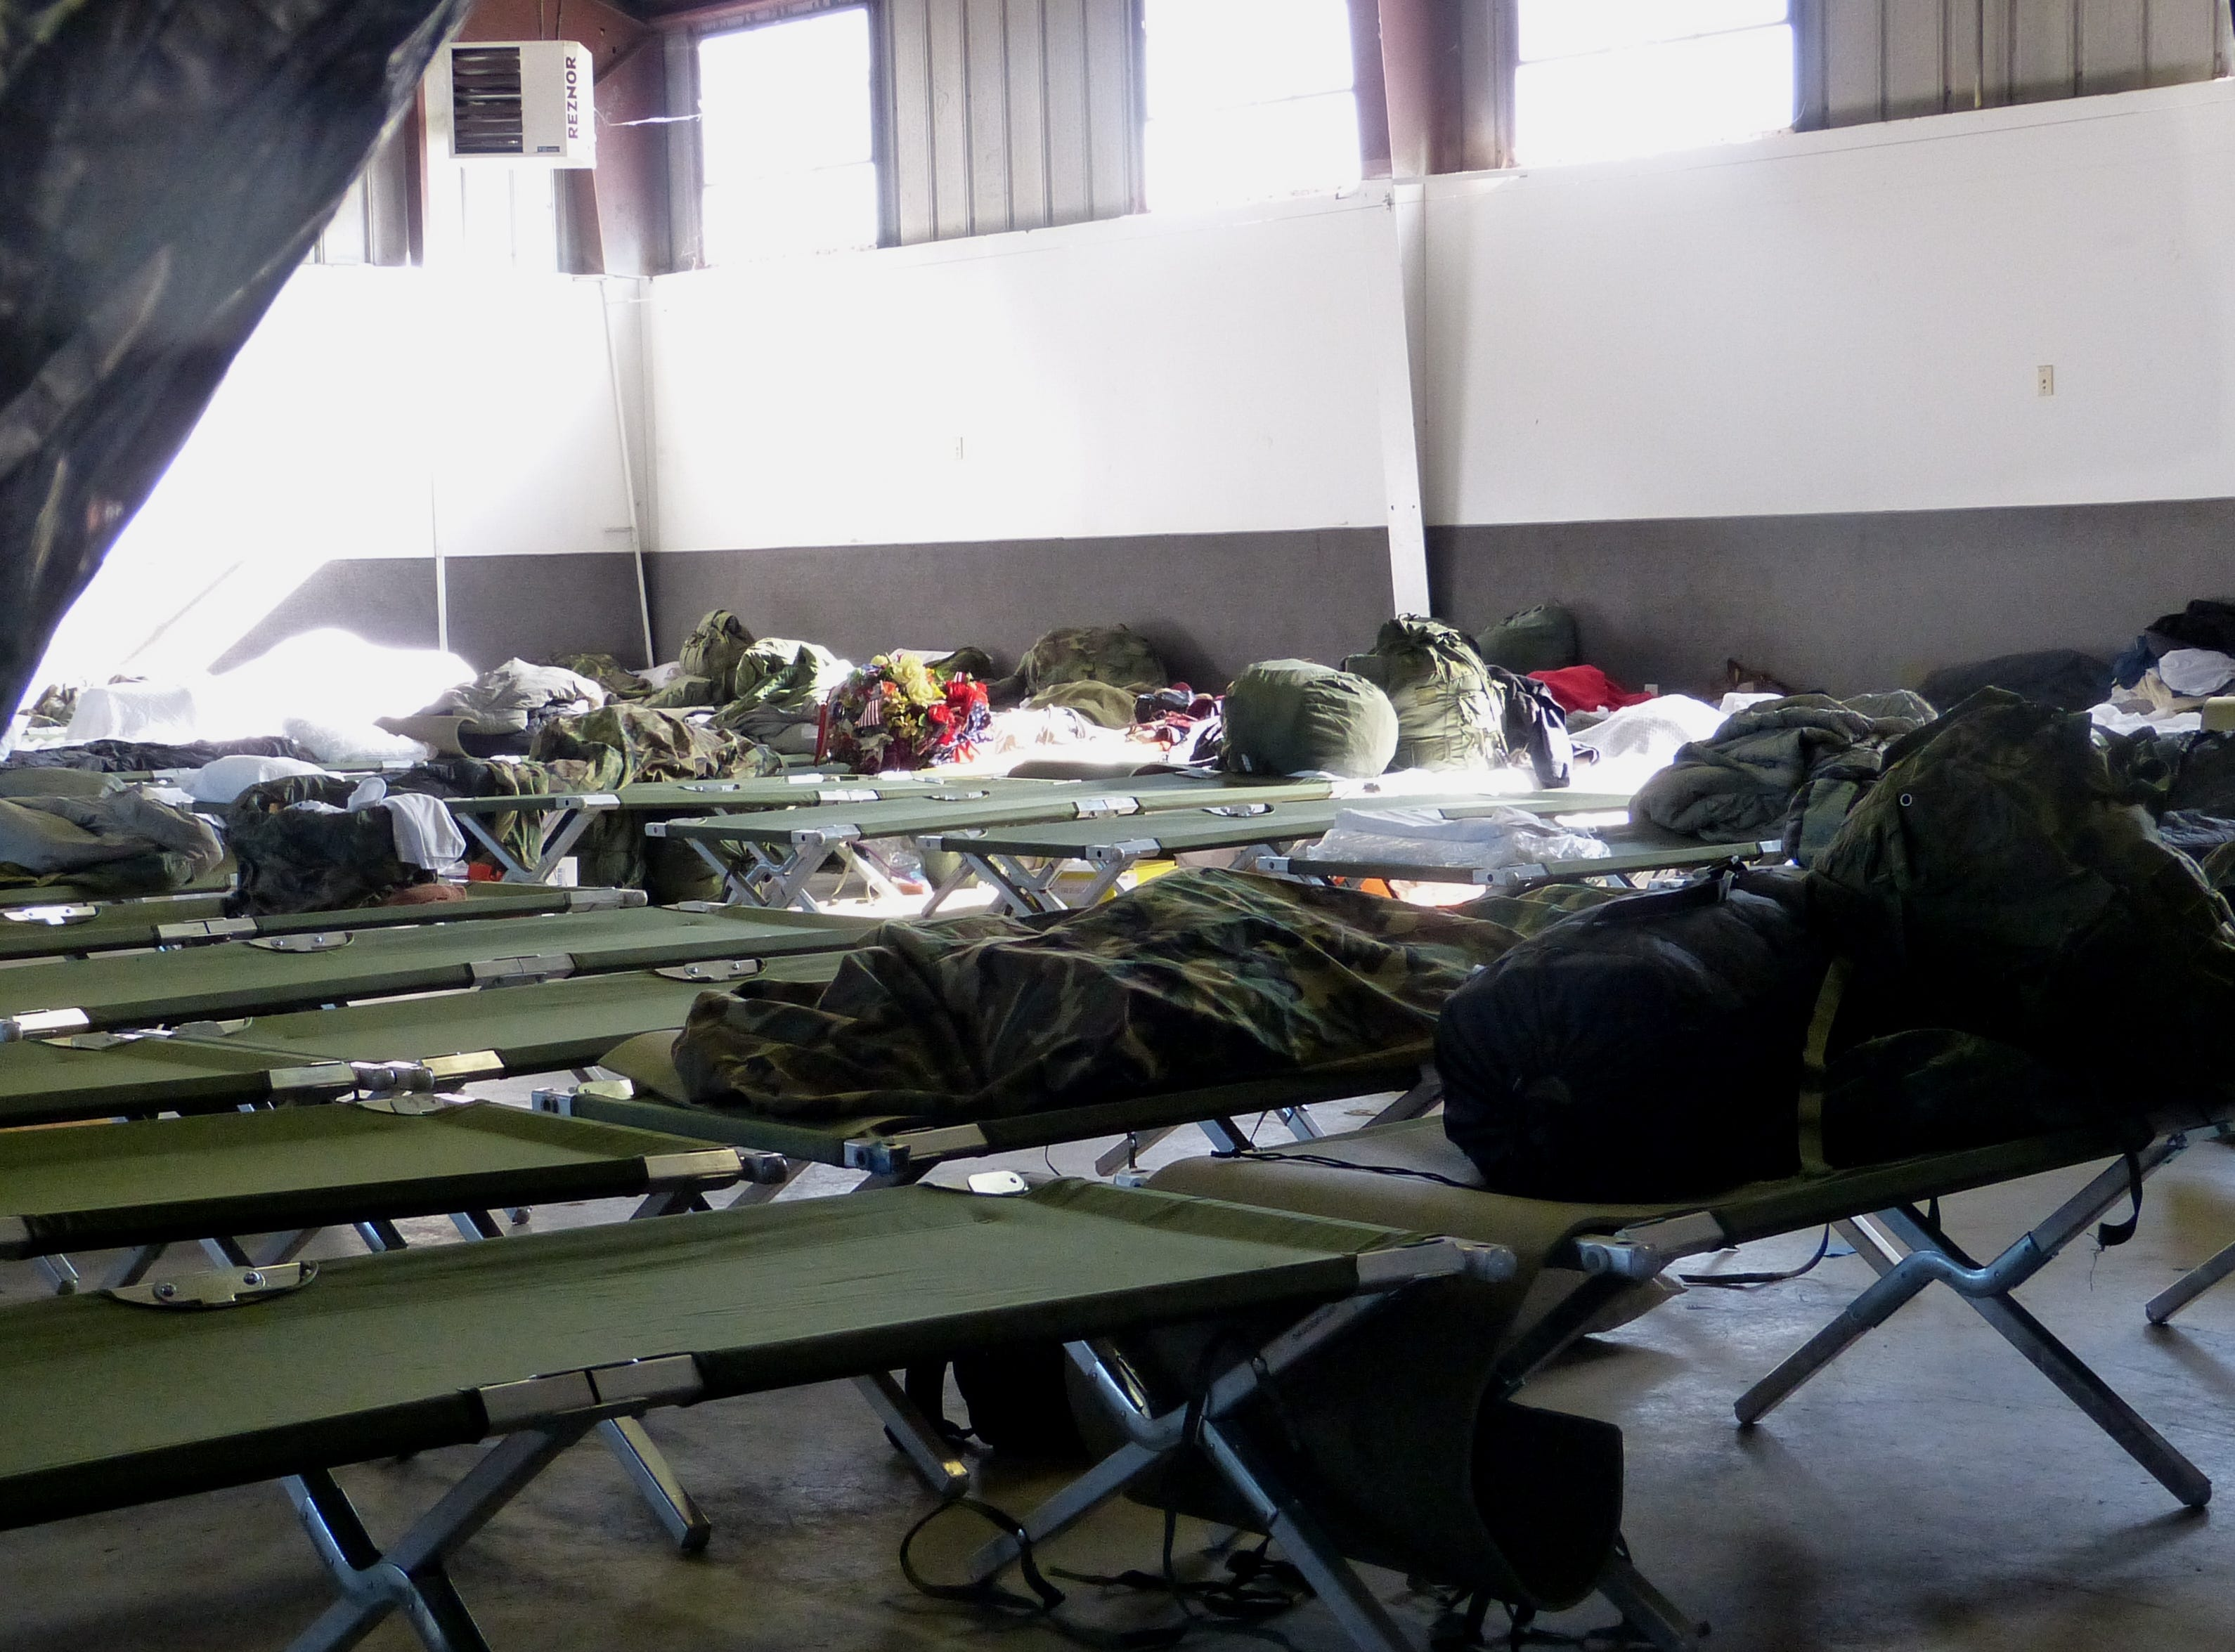 The three-day Stand Down offered free temporary shelter for homeless veterans.